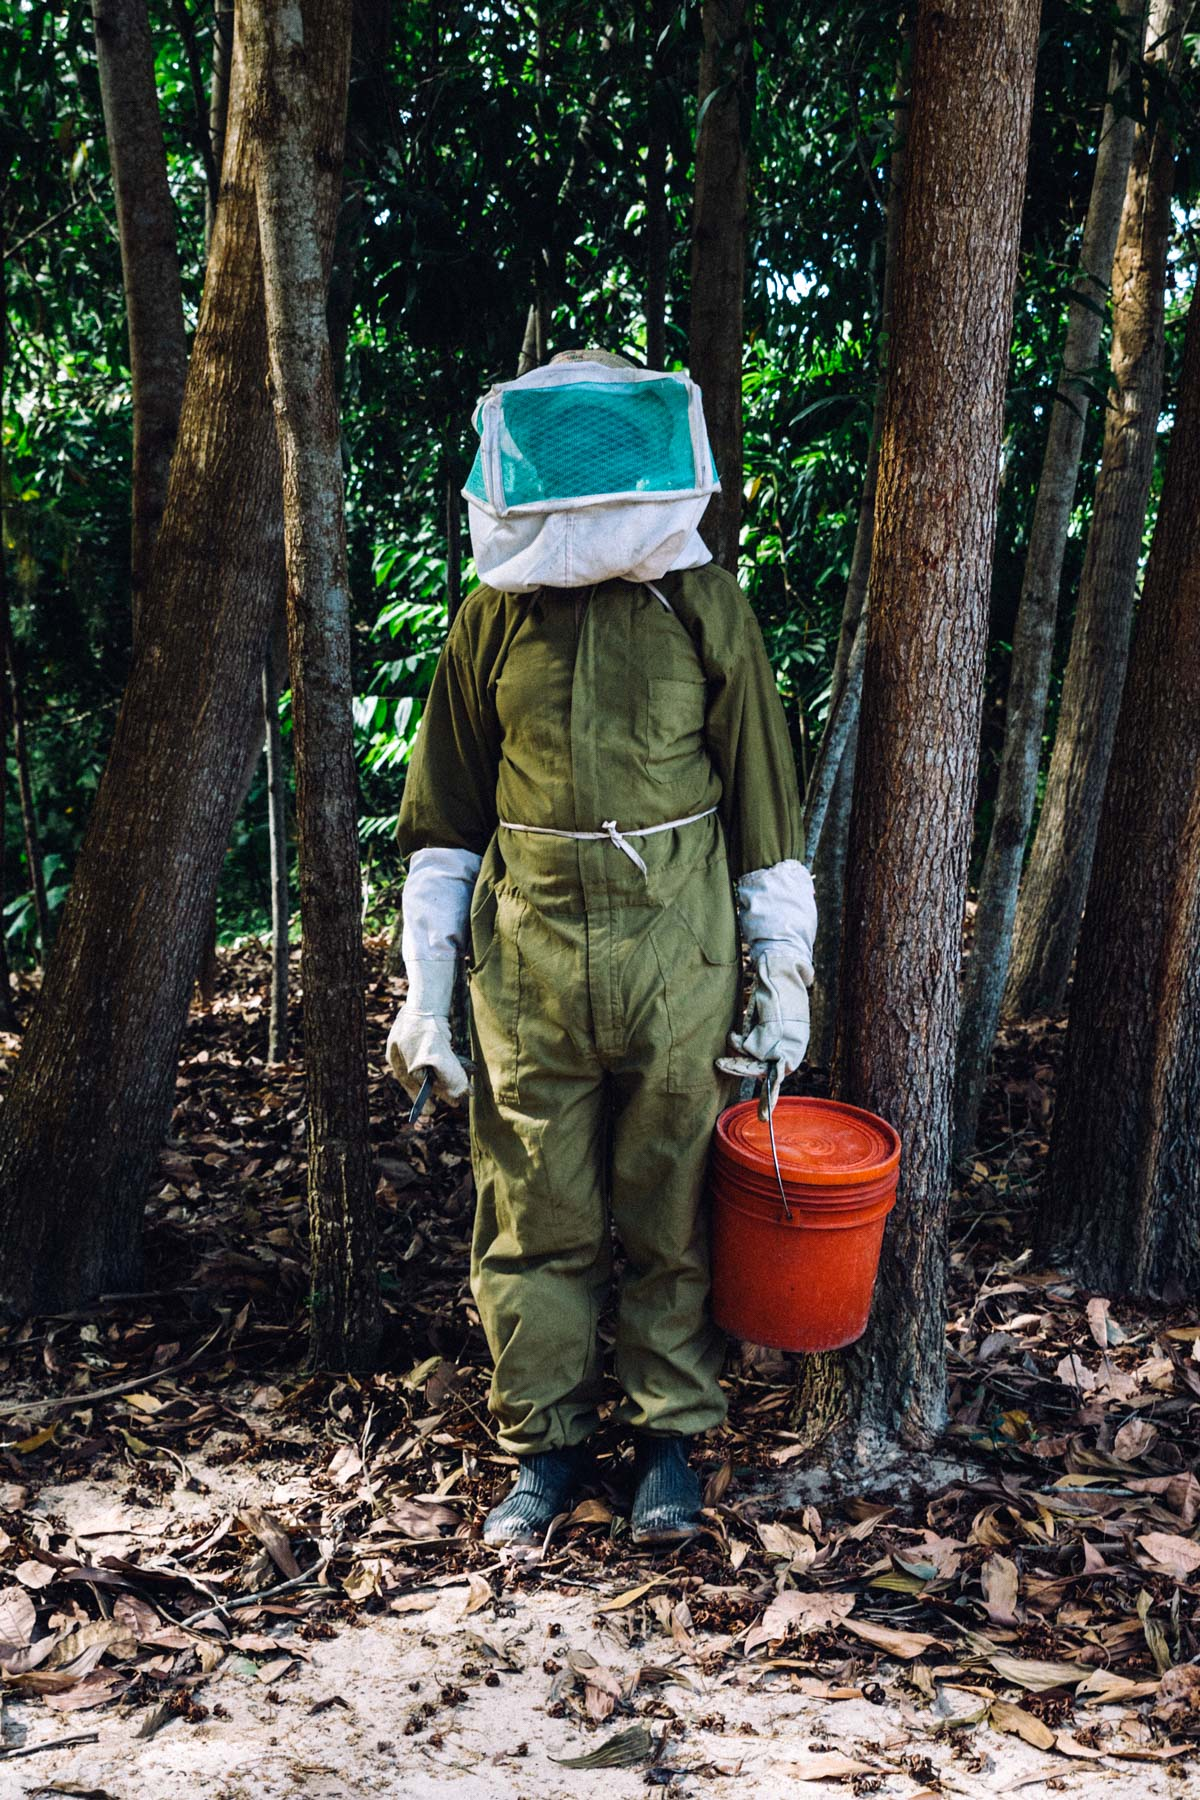 Ali harvested eight liters of honey last year and expects to double that amount as he harvests in the next few months.